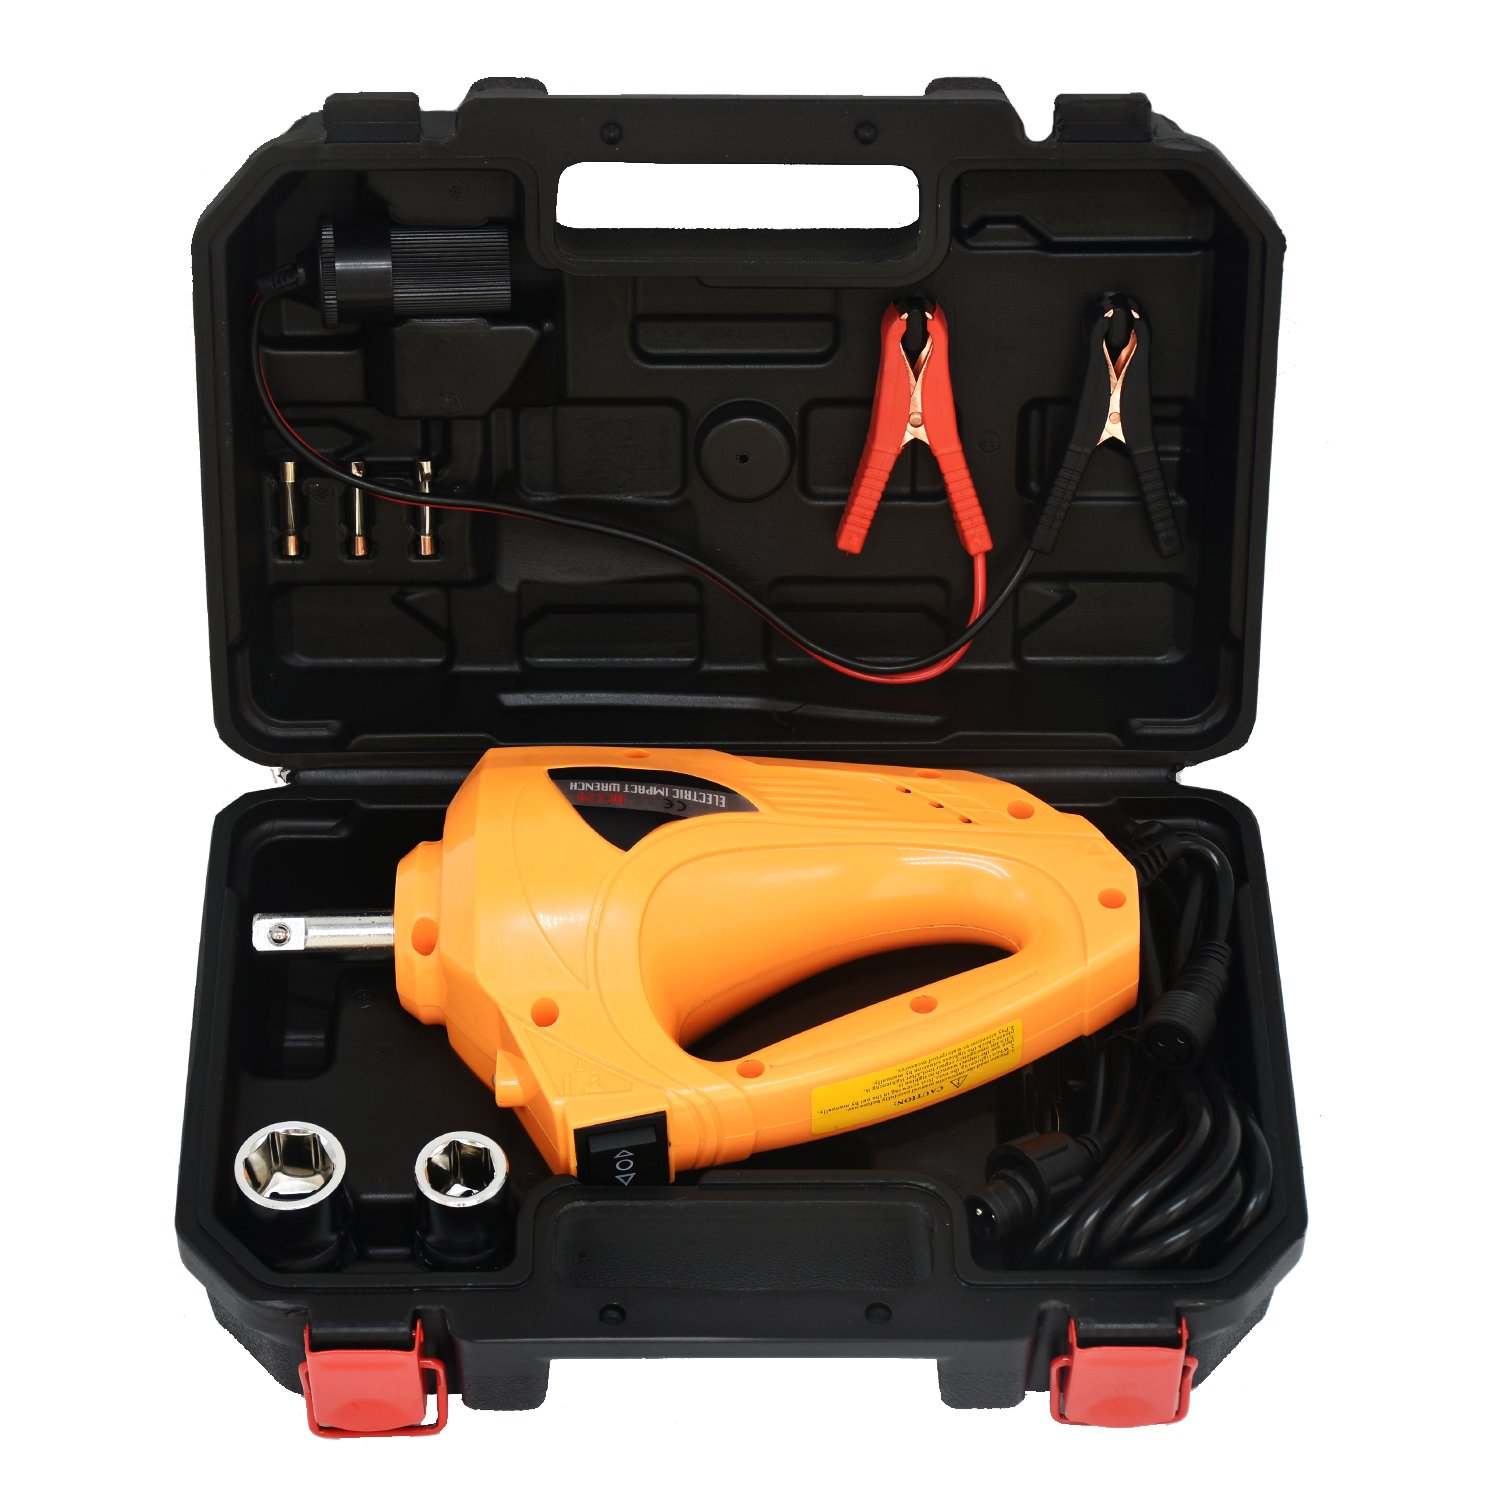 MarchInn 11Amp 340N.M 250 ft. lb 12-Volt 1 2 Electric Impact Wrench Gun Kit